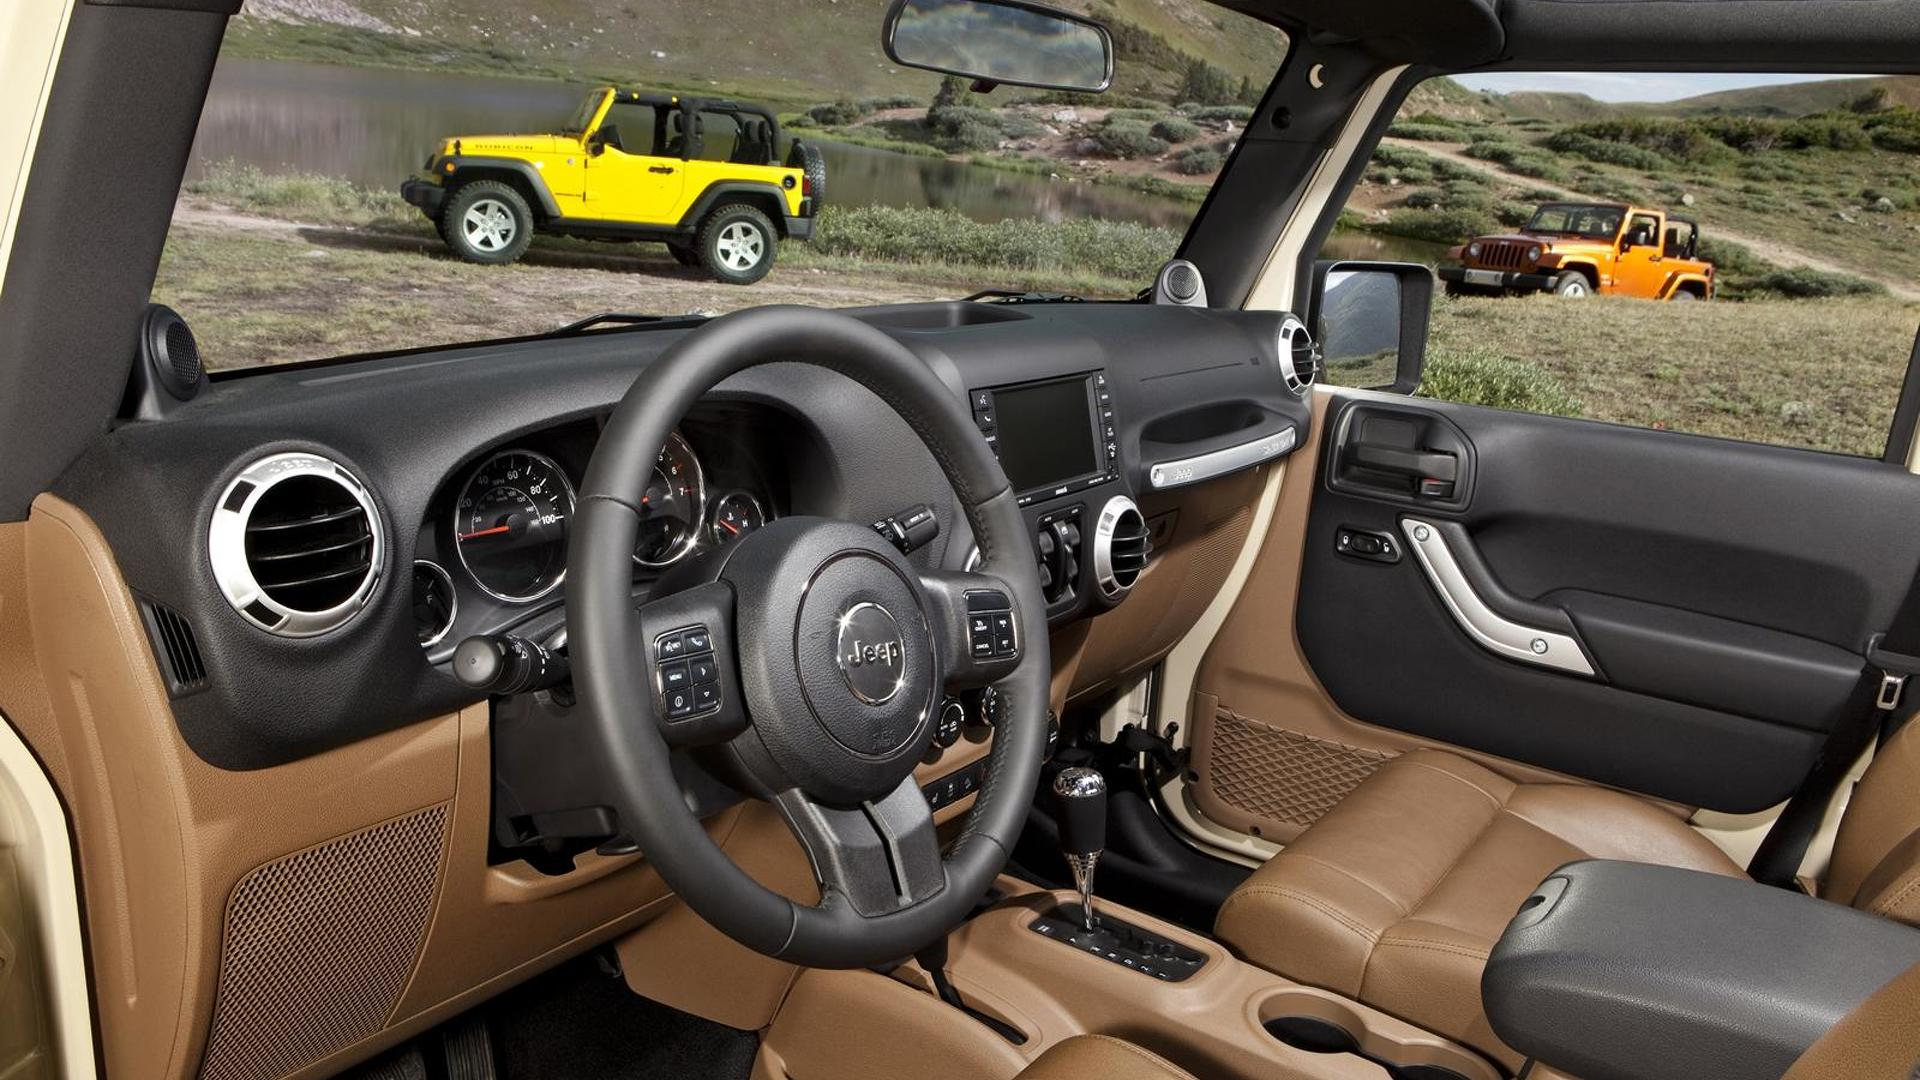 2011 jeep wrangler gets all new interior, body color hard top Custom Jeep Wrangler Unlimited Interior